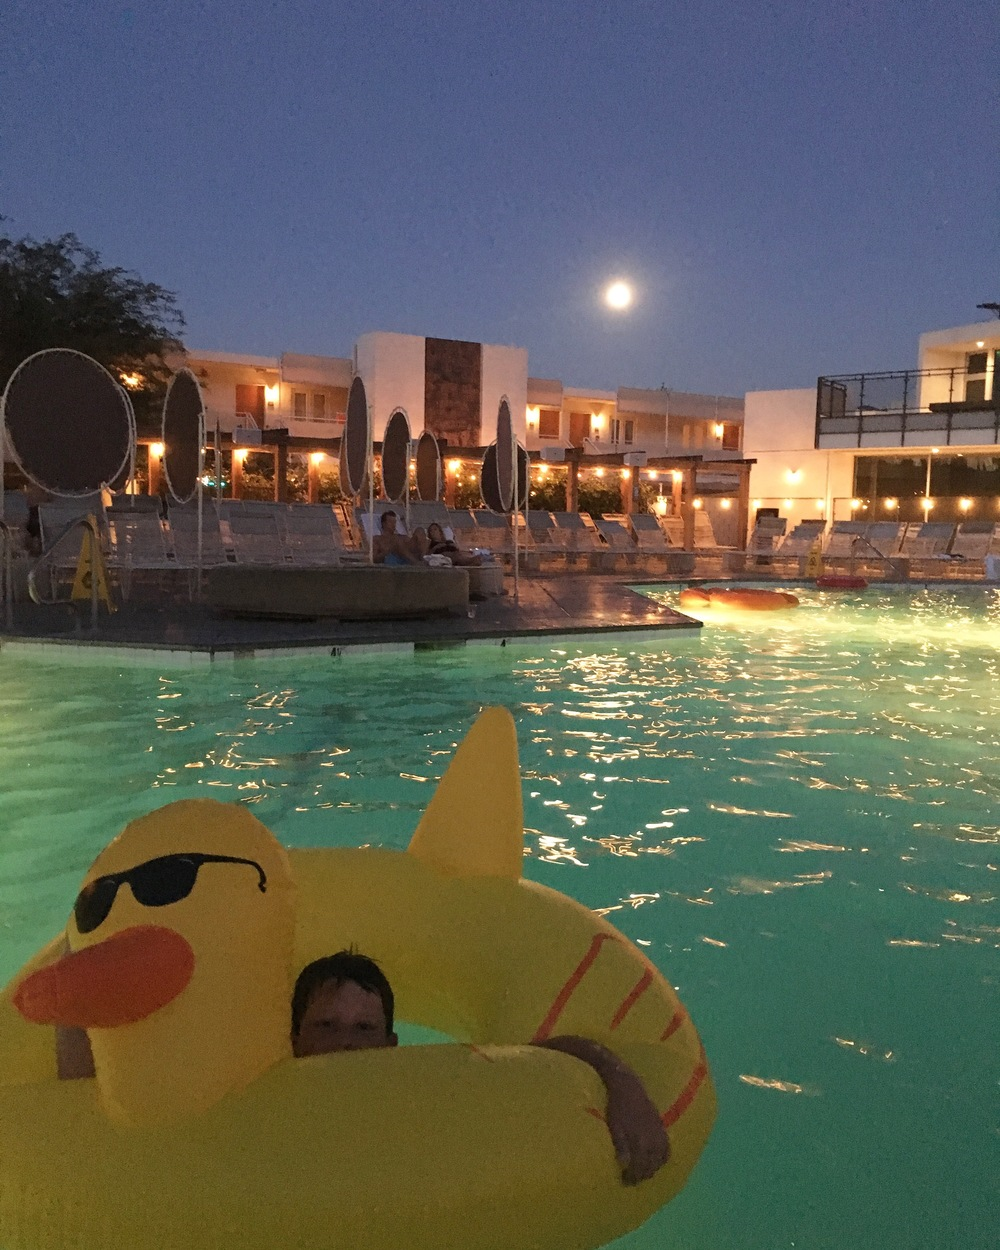 Happiness is a giant rubber ducky.